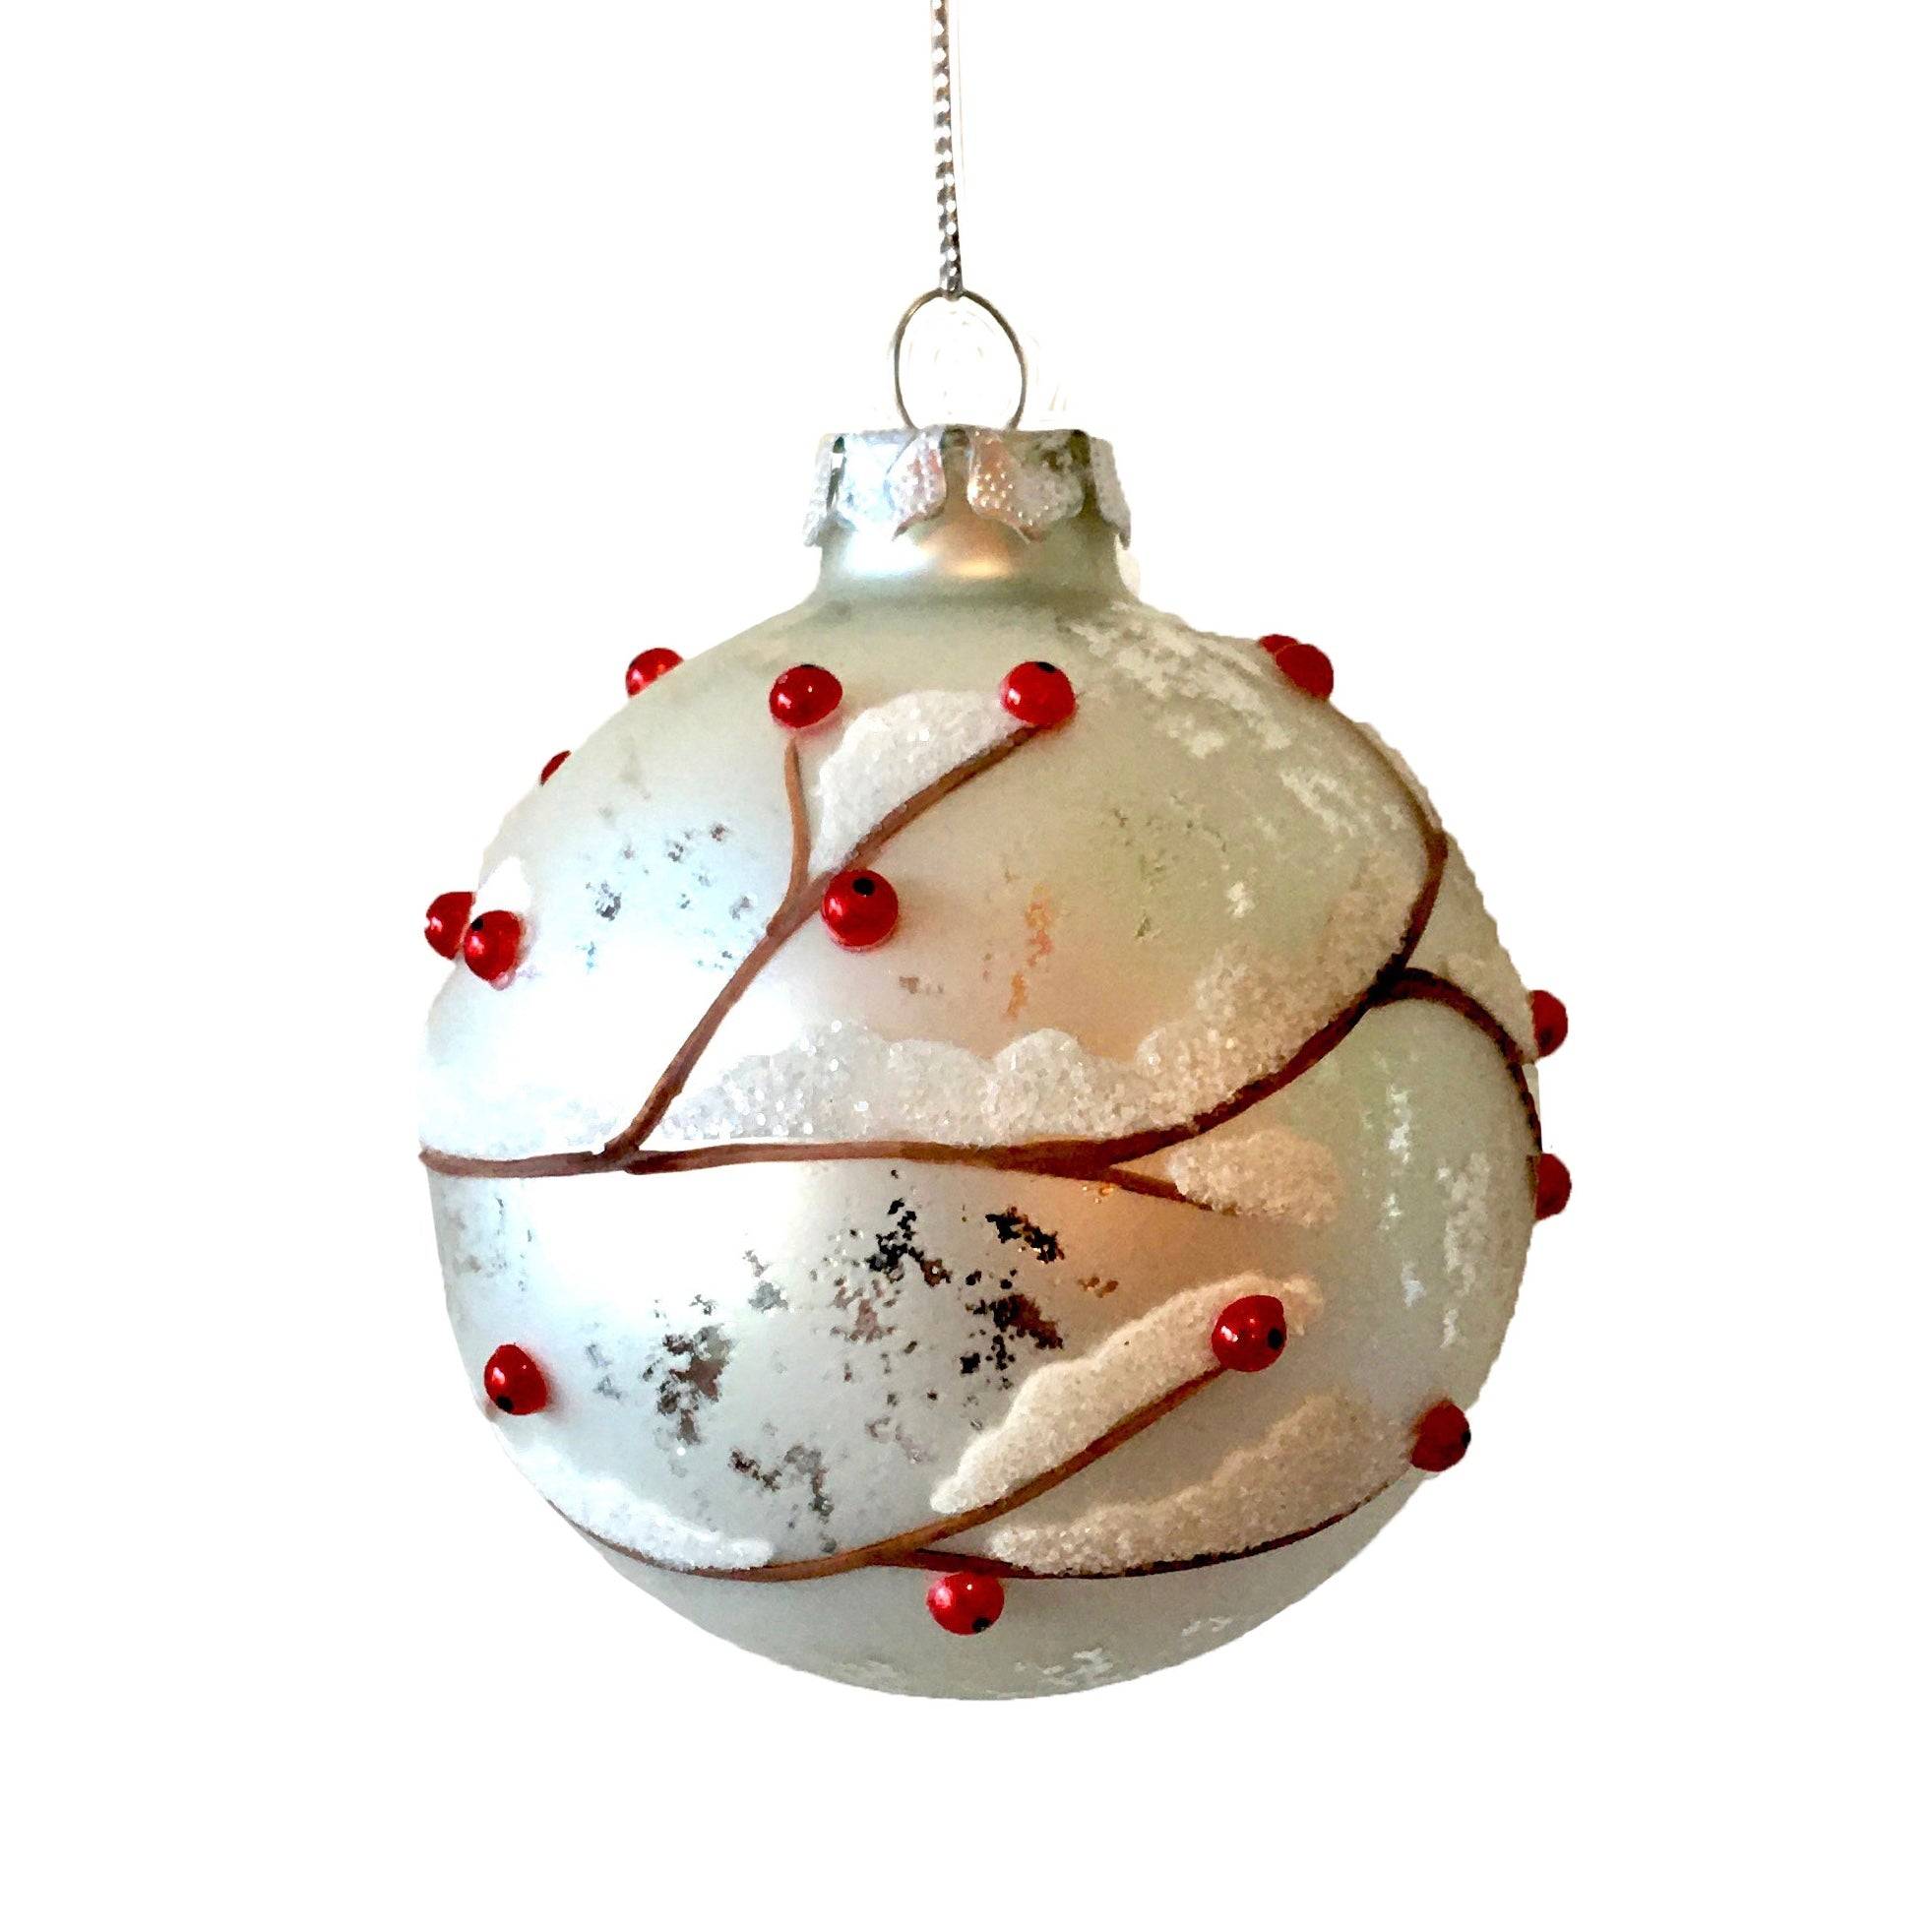 Matte White with Red Berries Glass Ball Ornament